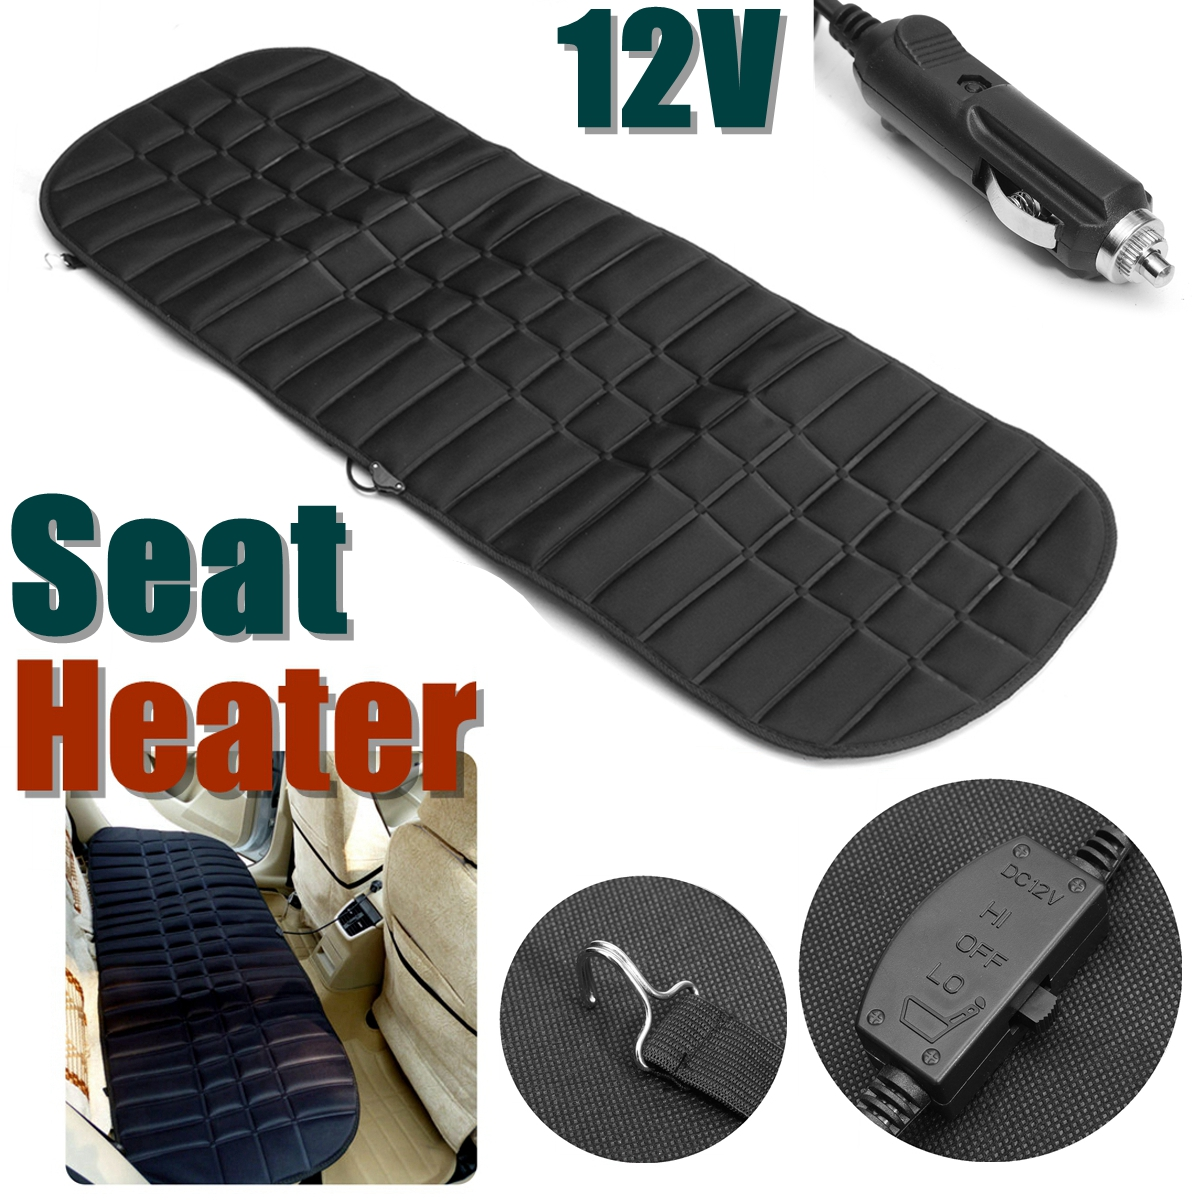 Rear Back Heated Heating Seat Cushion Cover Pad 12v 42W Winter Car Auto Warmer Heater Automotive Accessories pillowcase classic style wave pattern car comfy back cushion cover